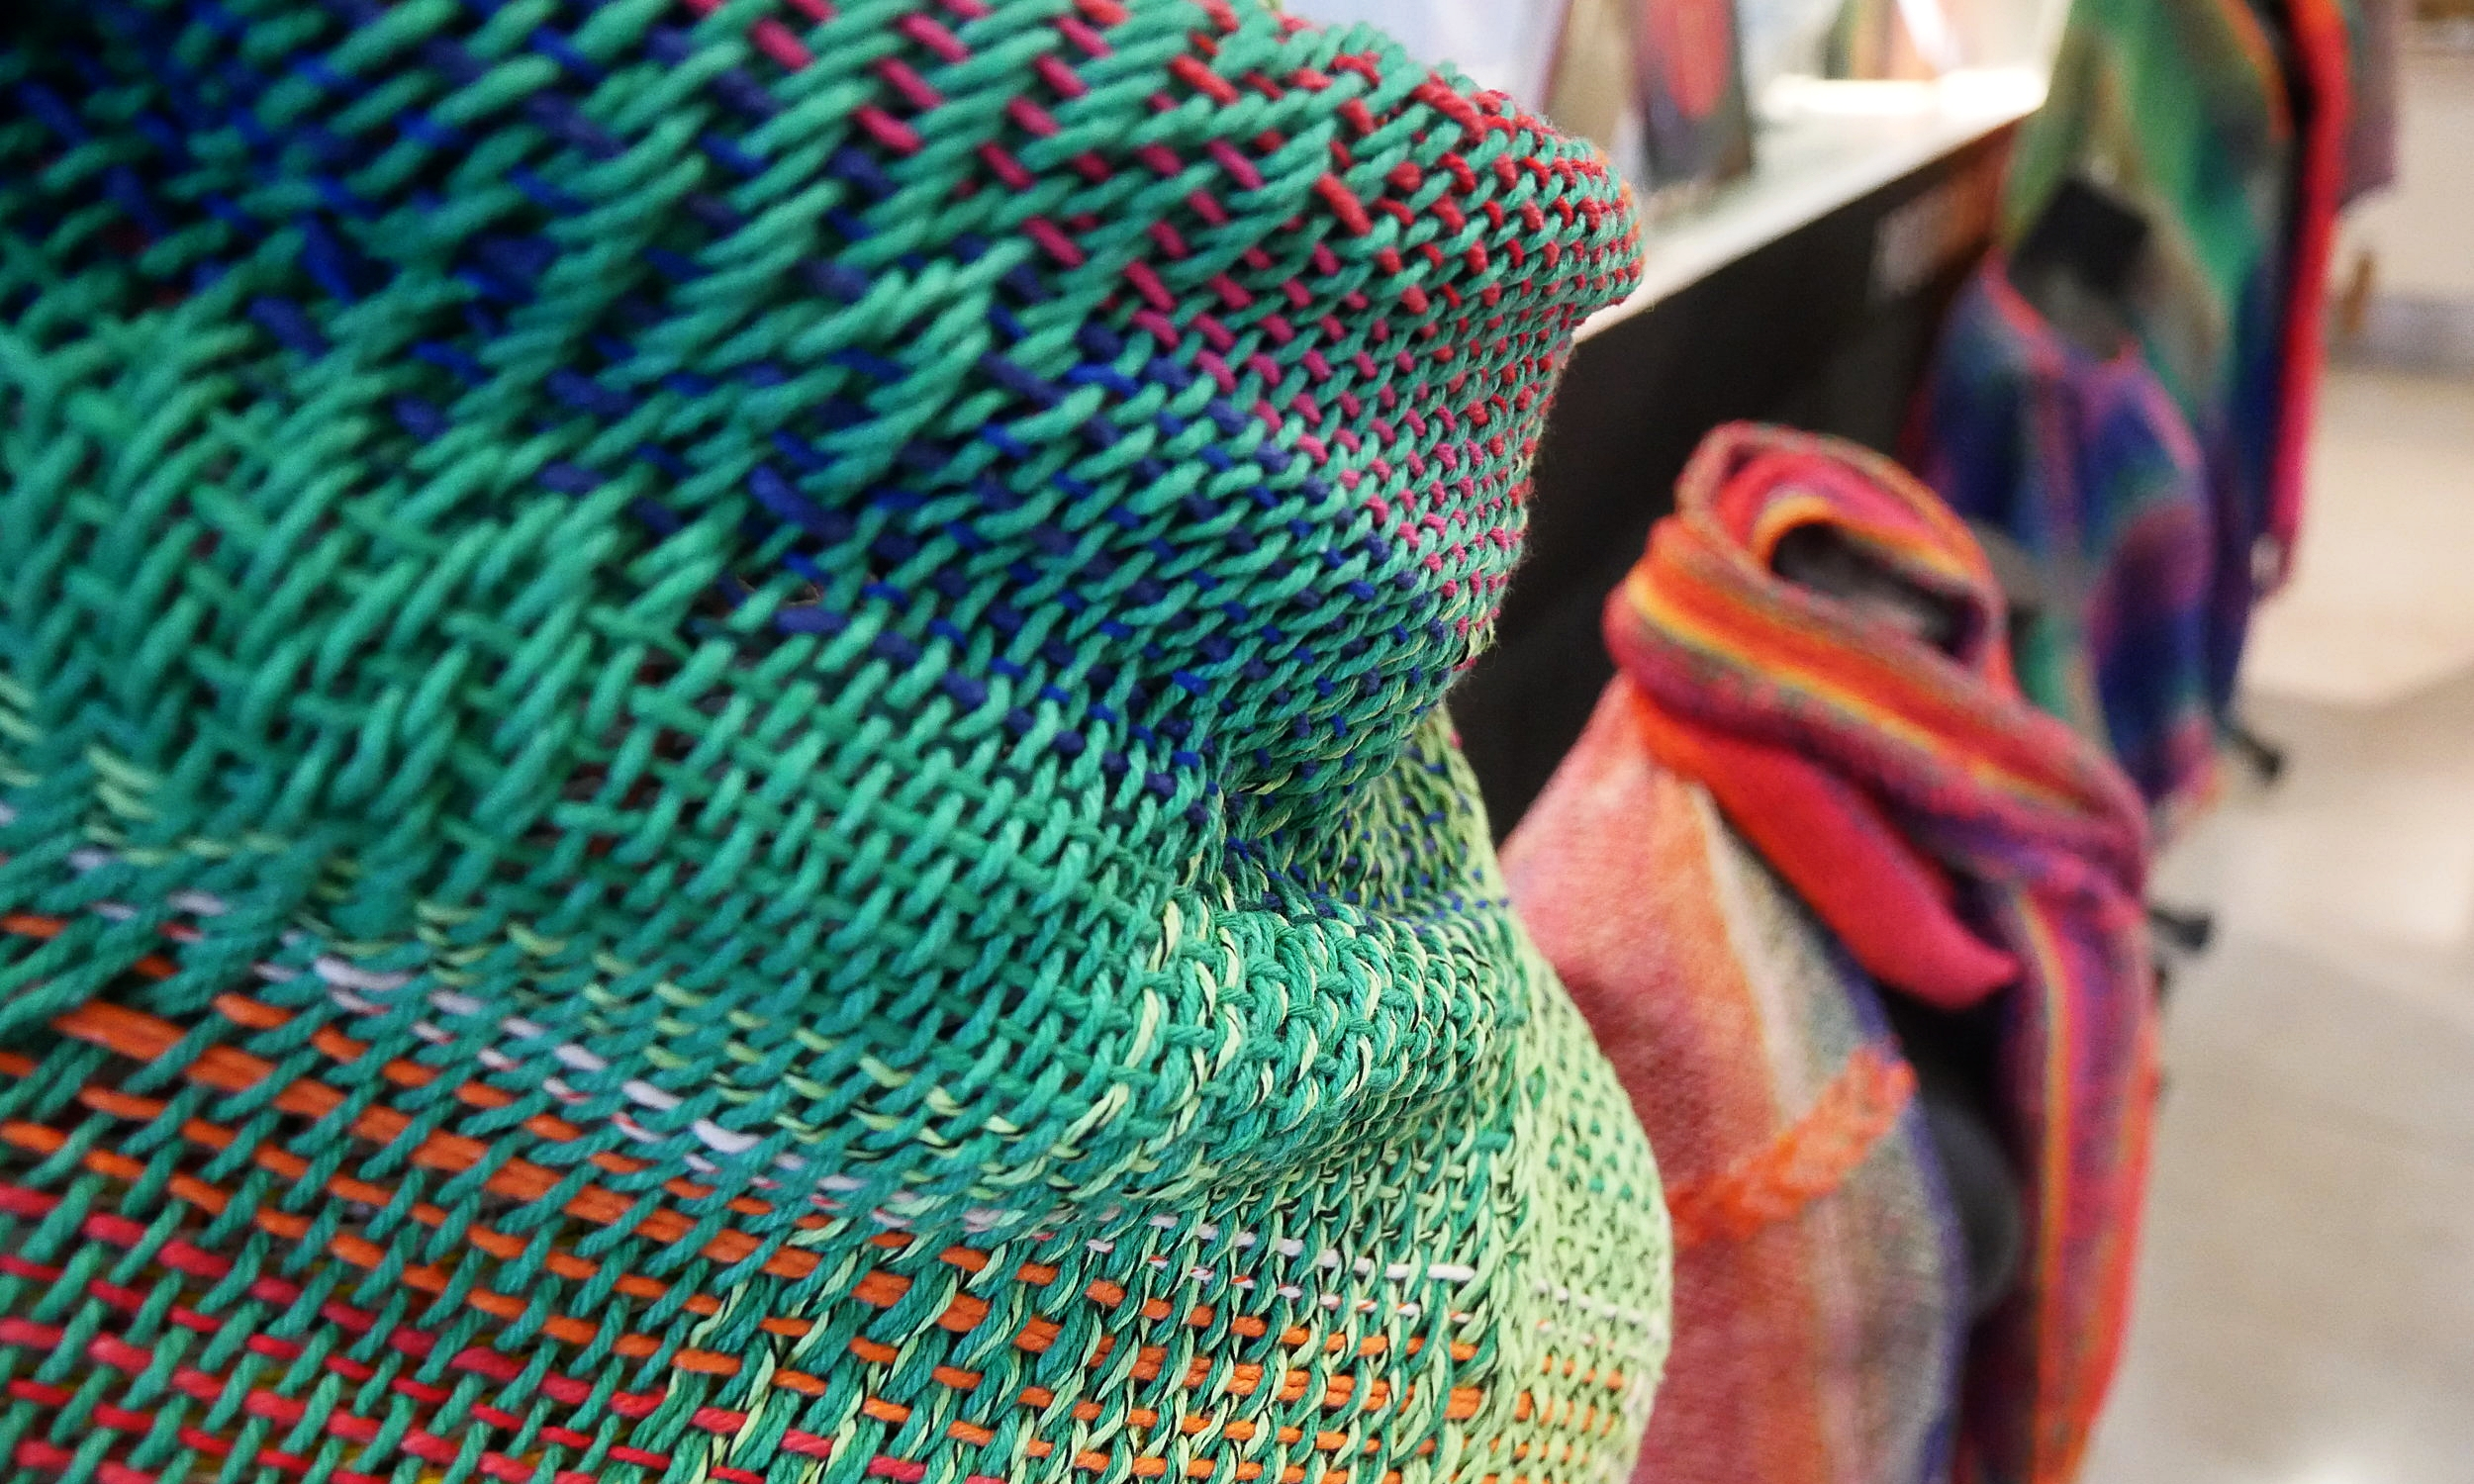 Beautifully designed scarves in the museum shop